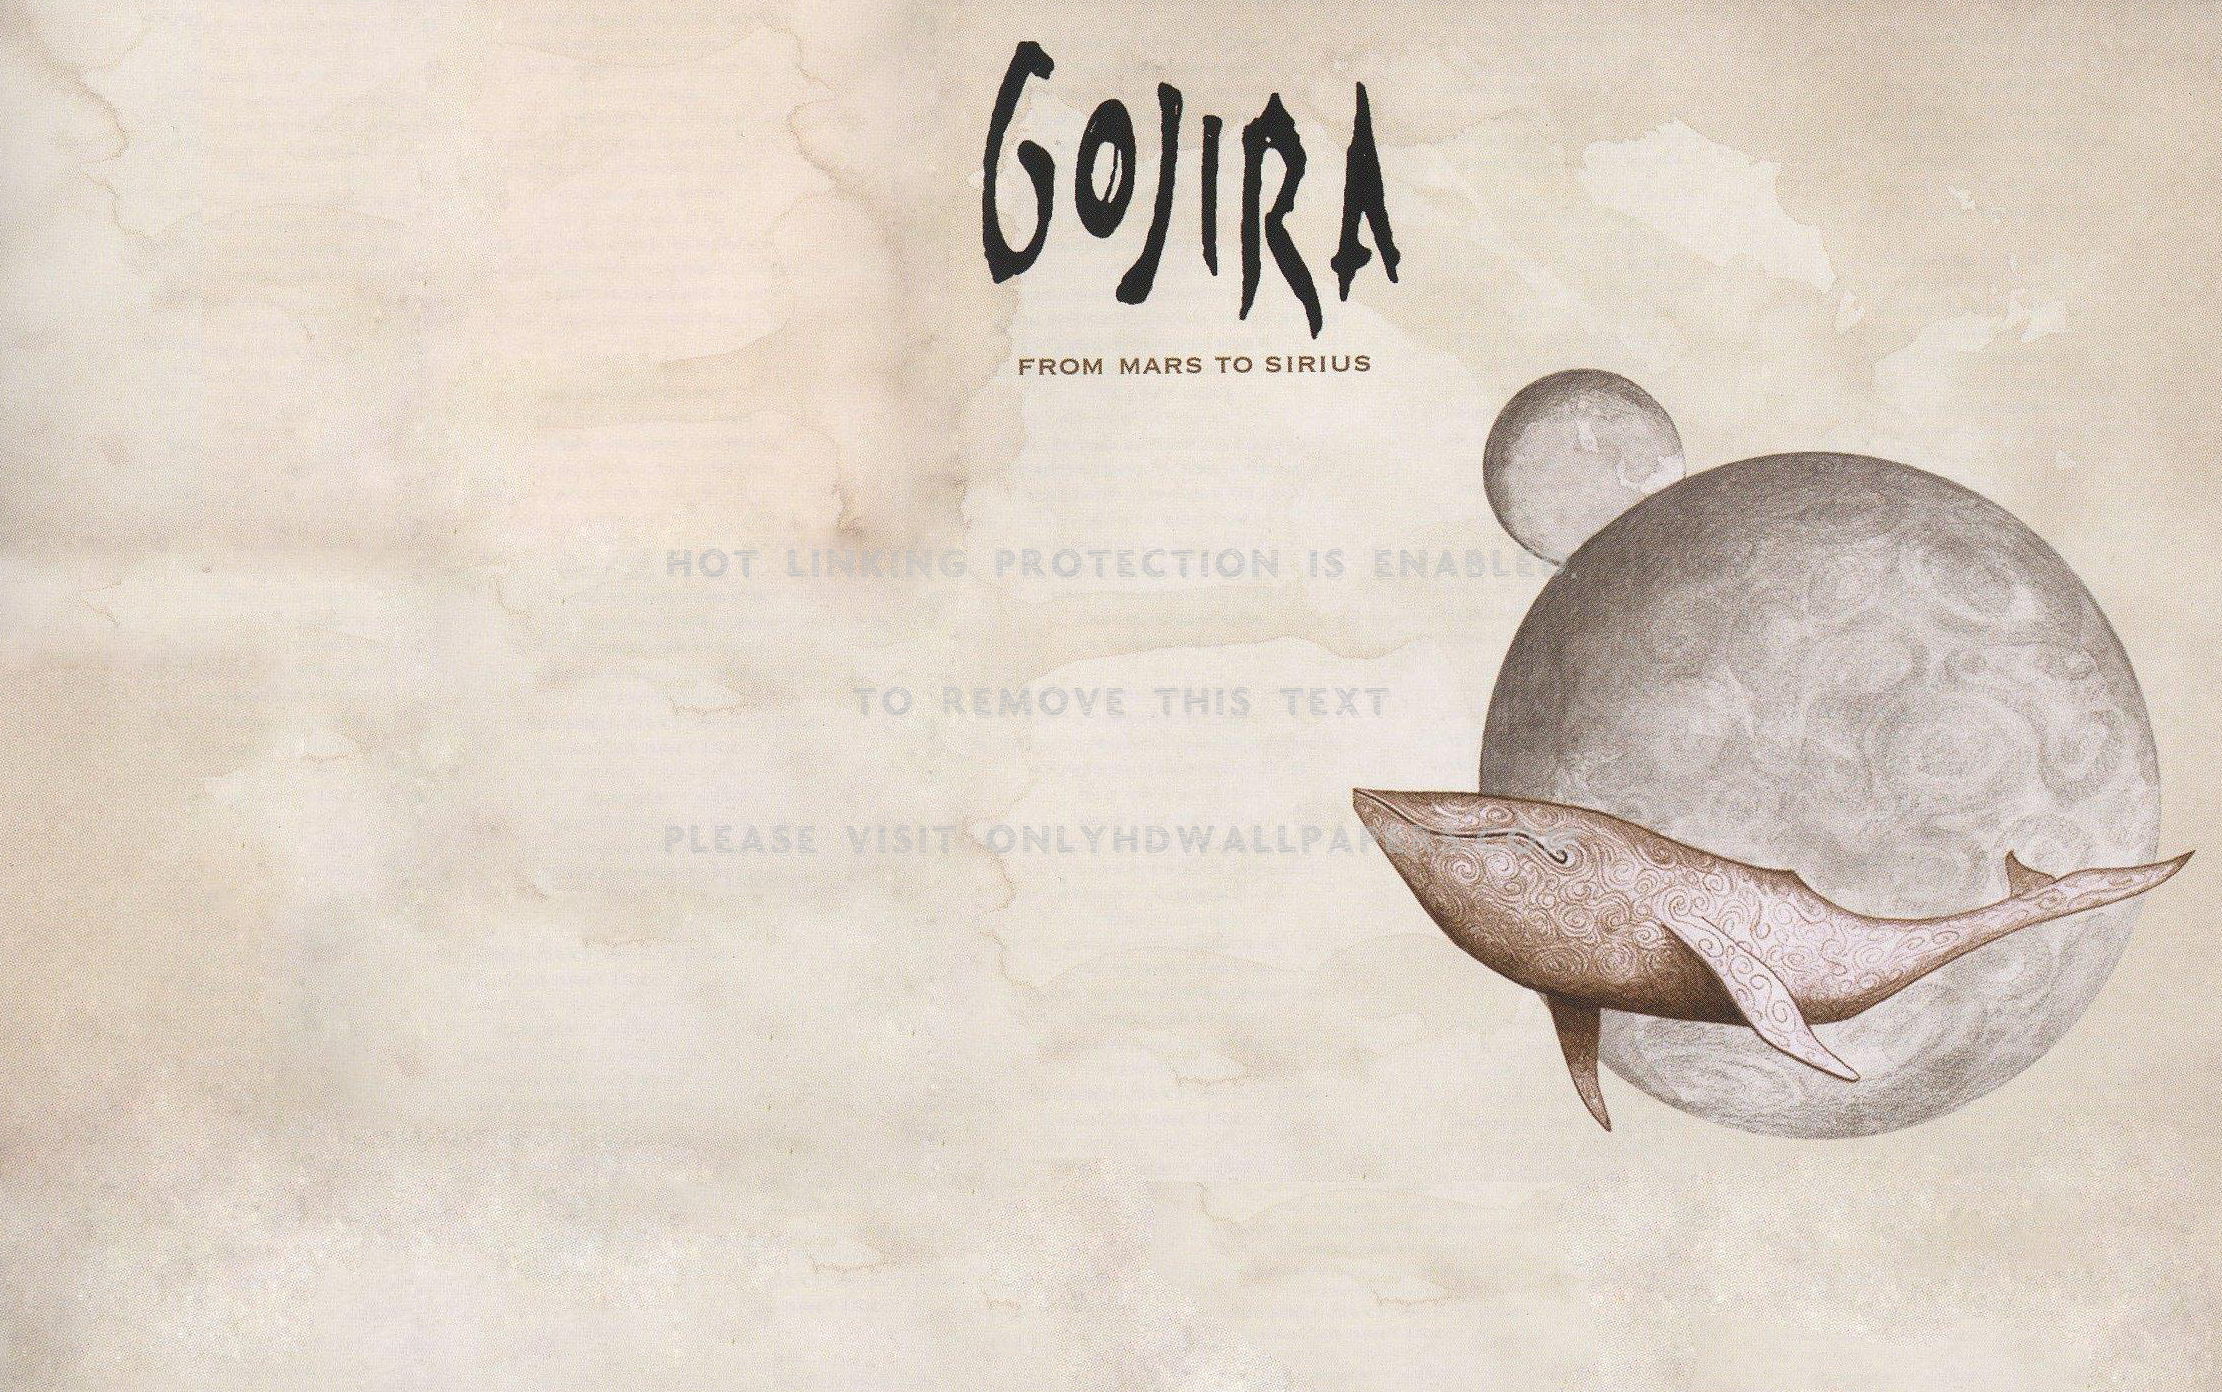 Mars Whales Gojira flying 2222x1392